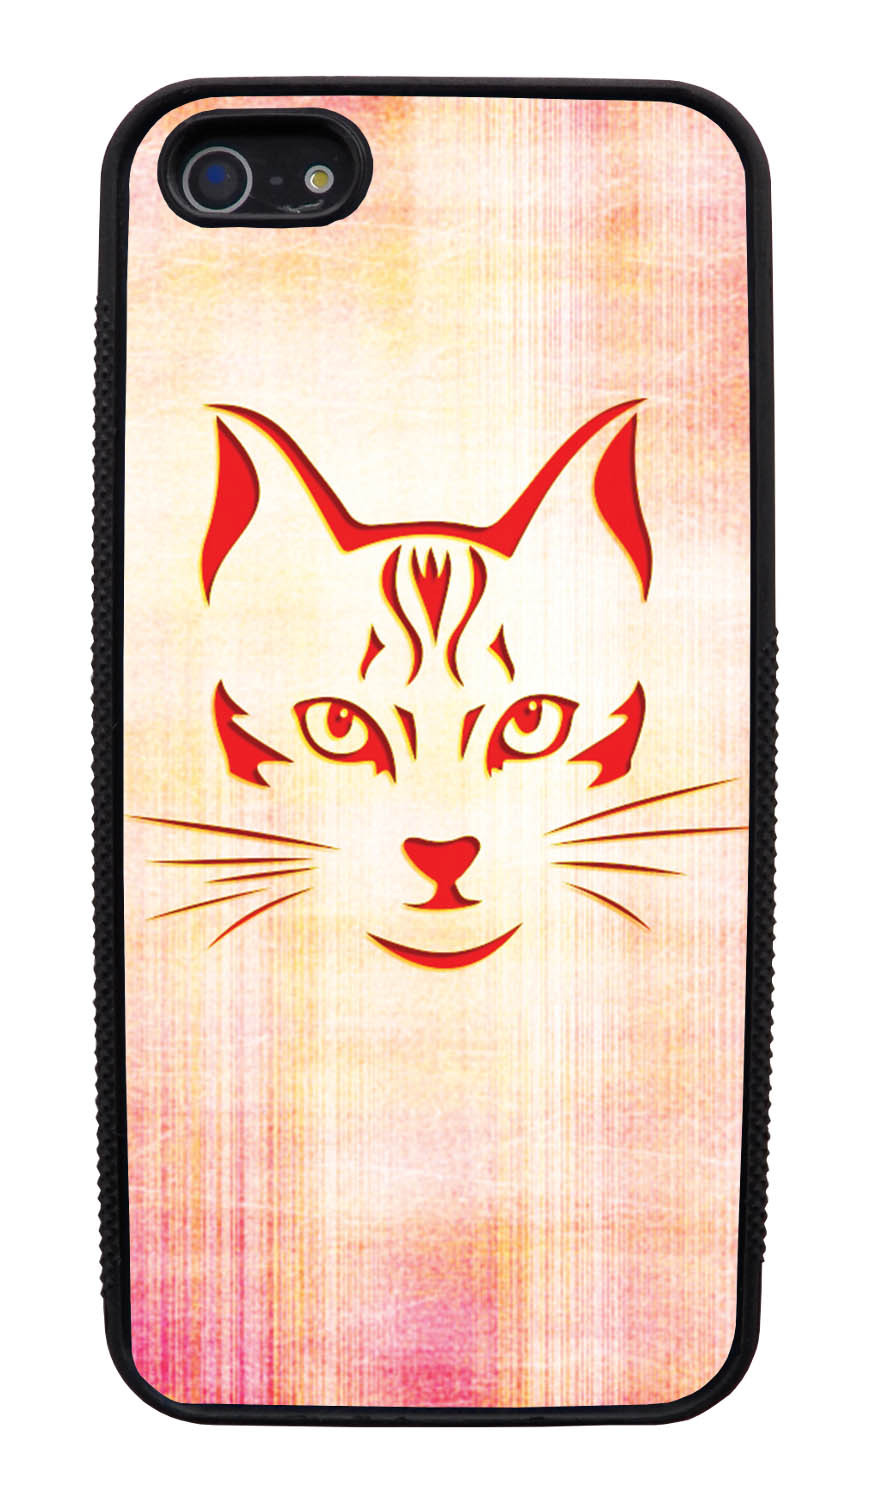 Apple iPhone 5 / 5S Cat Case - Red Cat Face on Light Orange-Pink - Simple Stencils Cutout - Black Slim Rubber Case